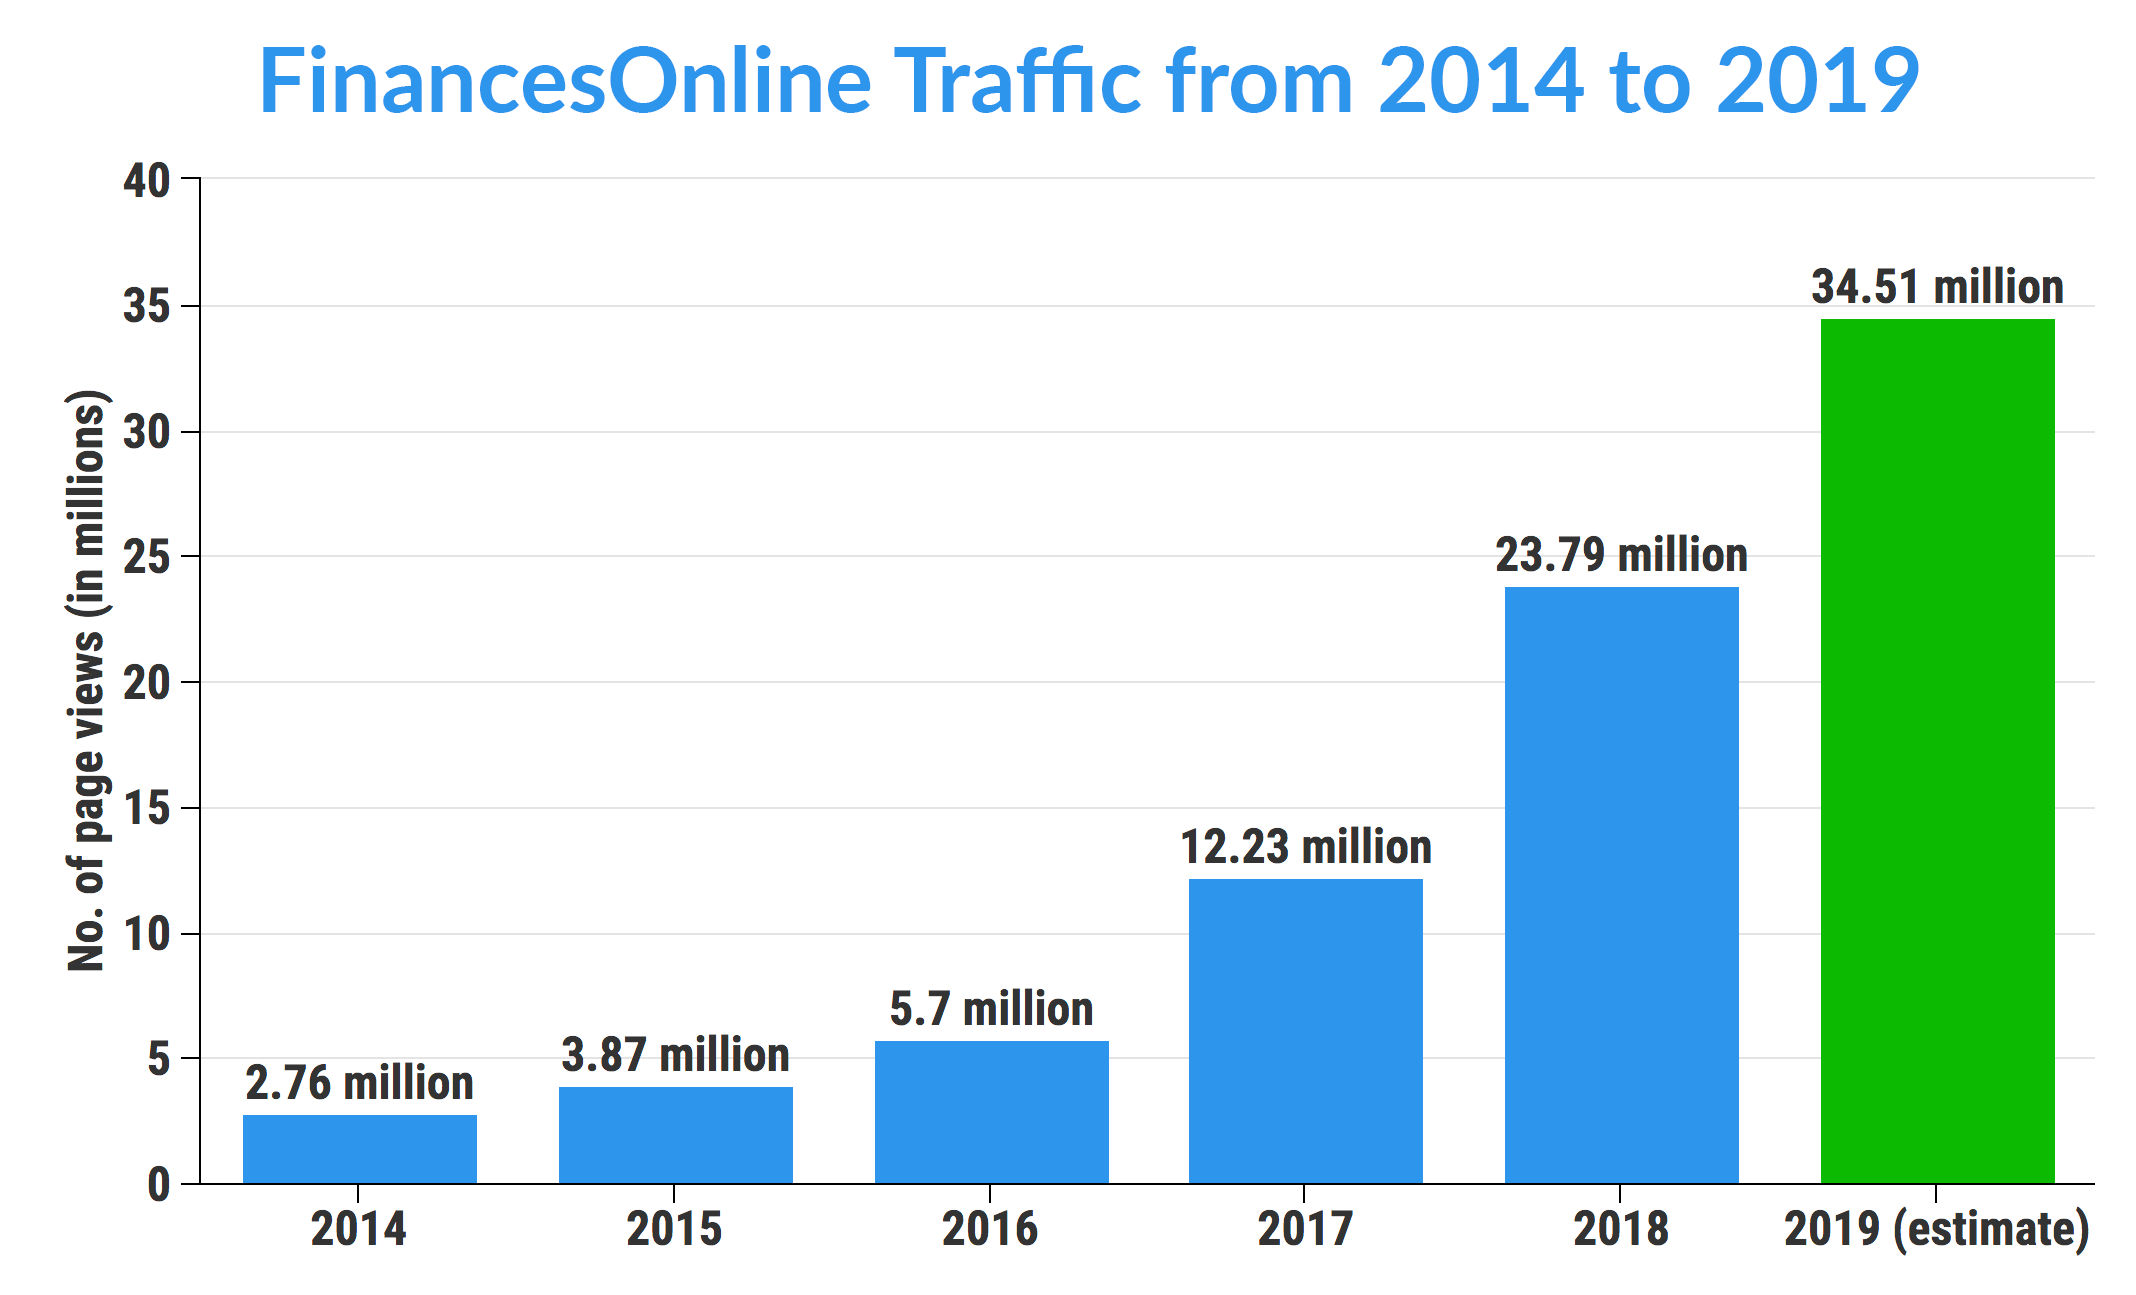 FinancesOnline Traffic 2014 to 2019